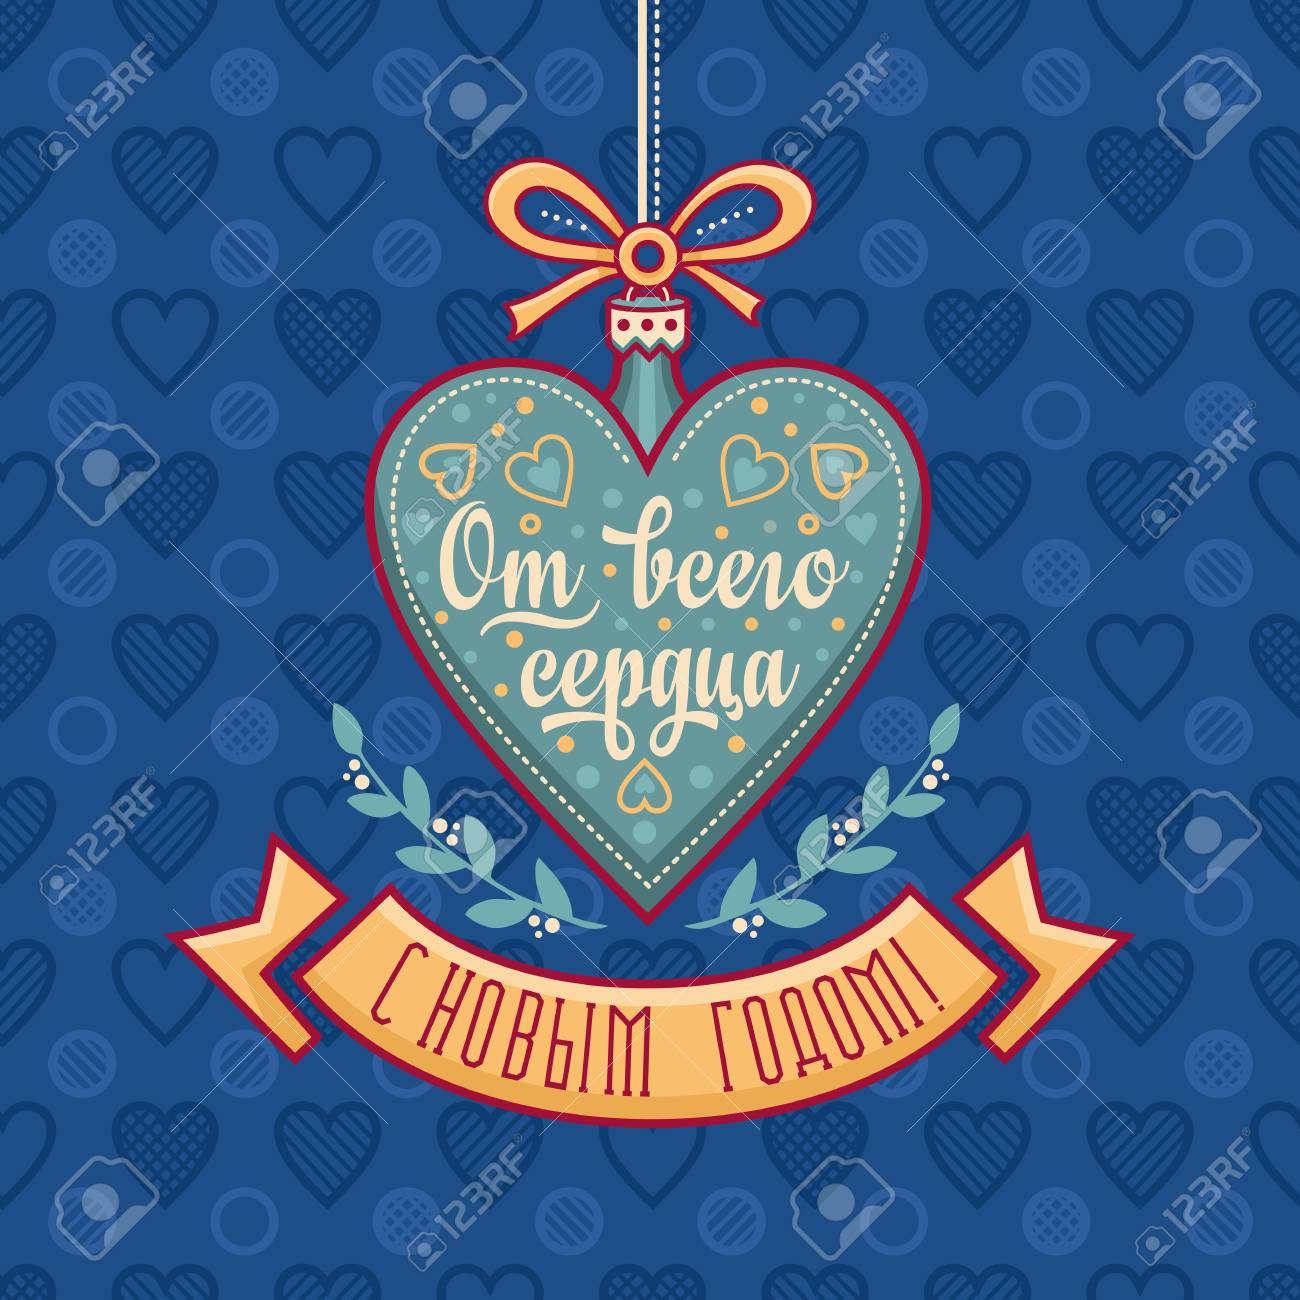 Greeting card with happy new year phrase in russian language greeting card with happy new year phrase in russian language stock vector 73021169 kristyandbryce Gallery